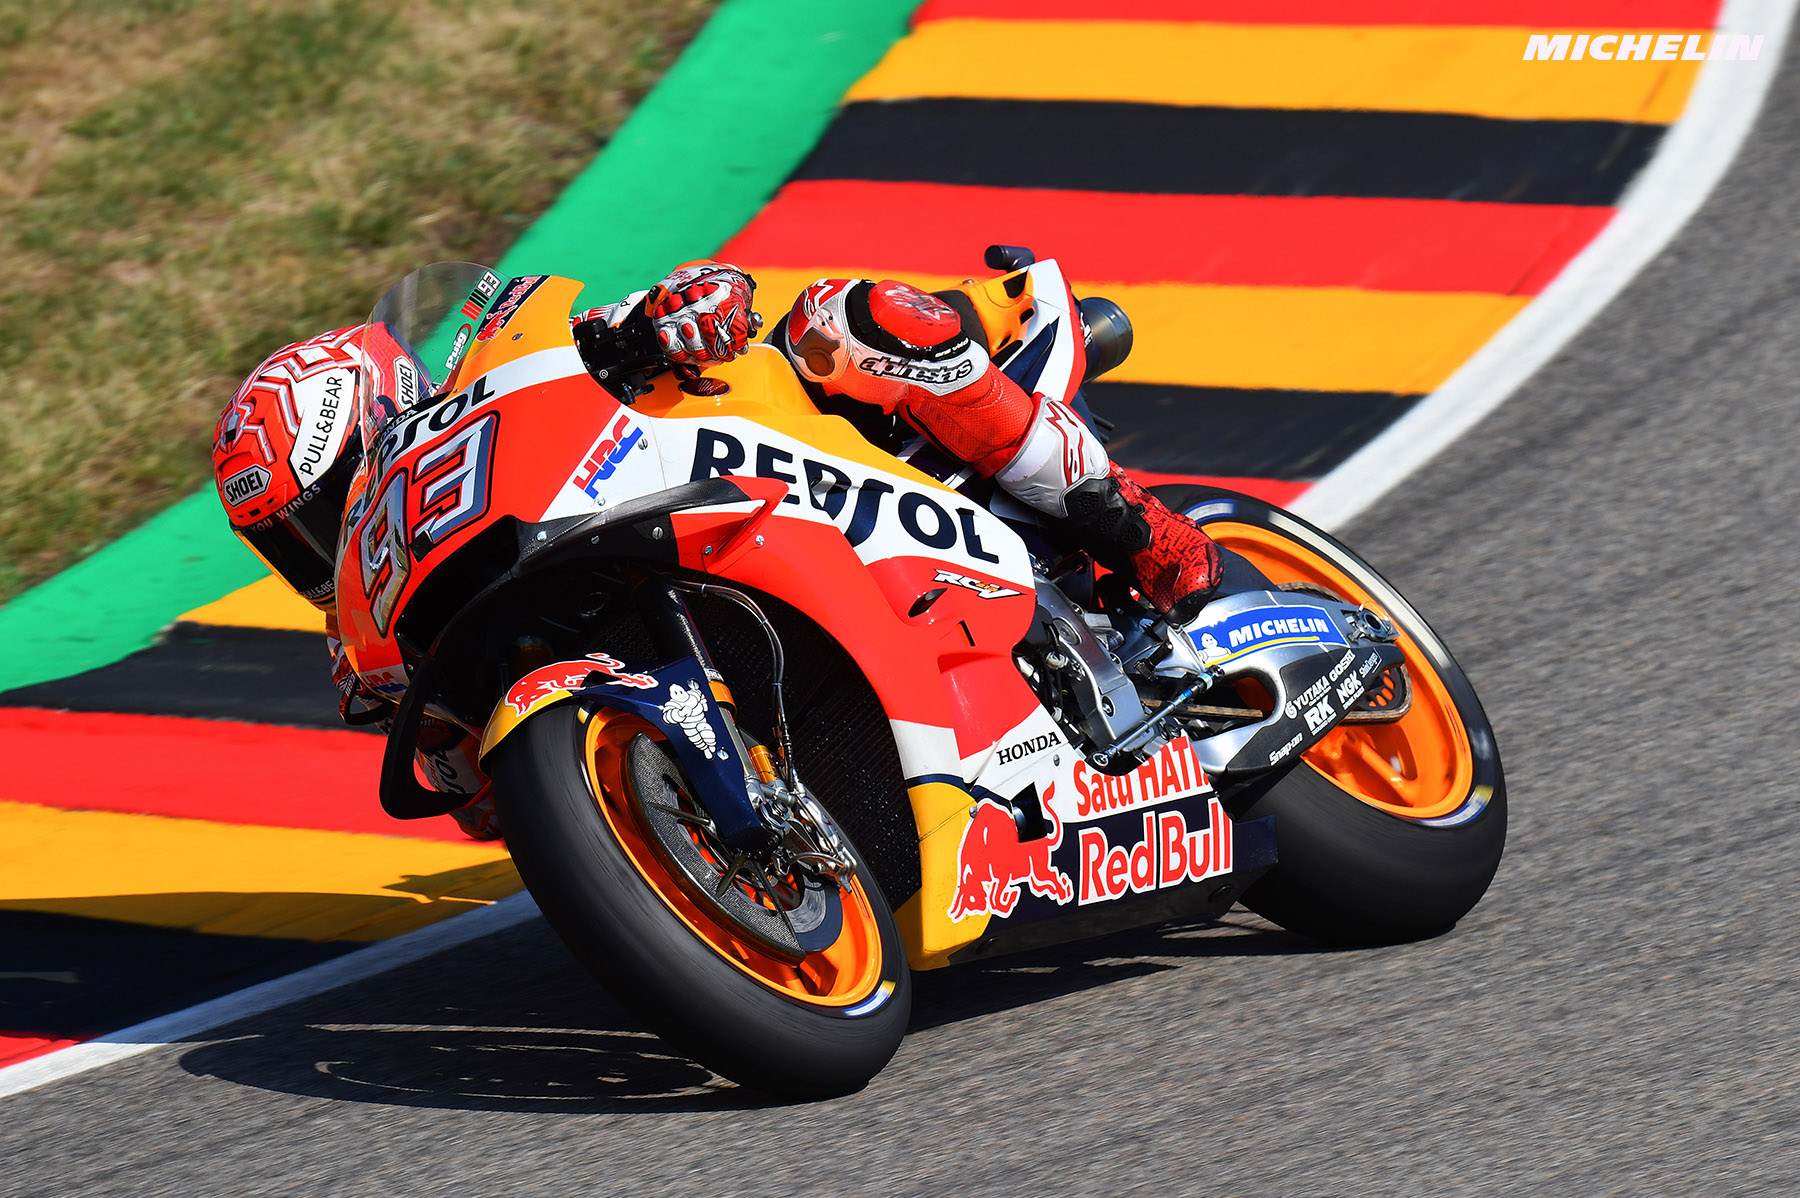 MotoGP™: Márquez (Repsol Honda Team / Michelin), King of the 'Ring